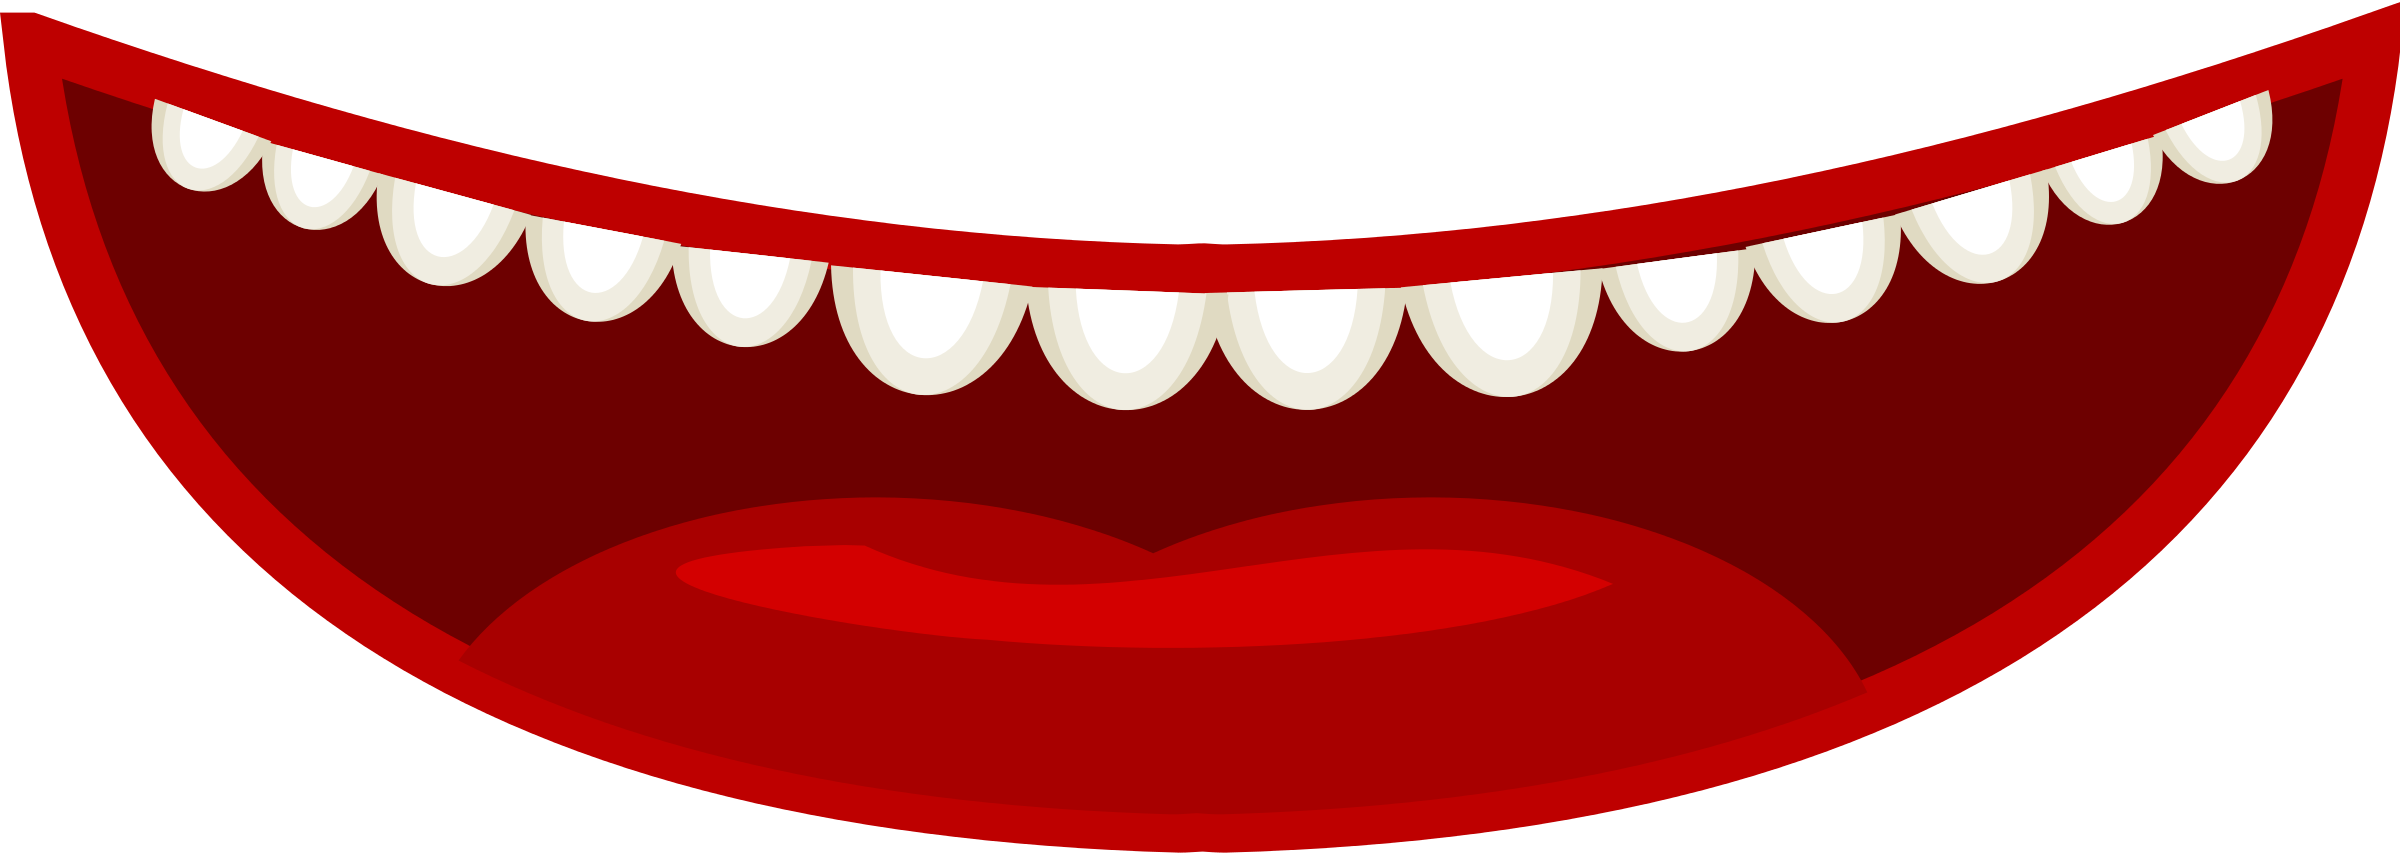 Lips clipart anamated. Teeth mouth smile pencil